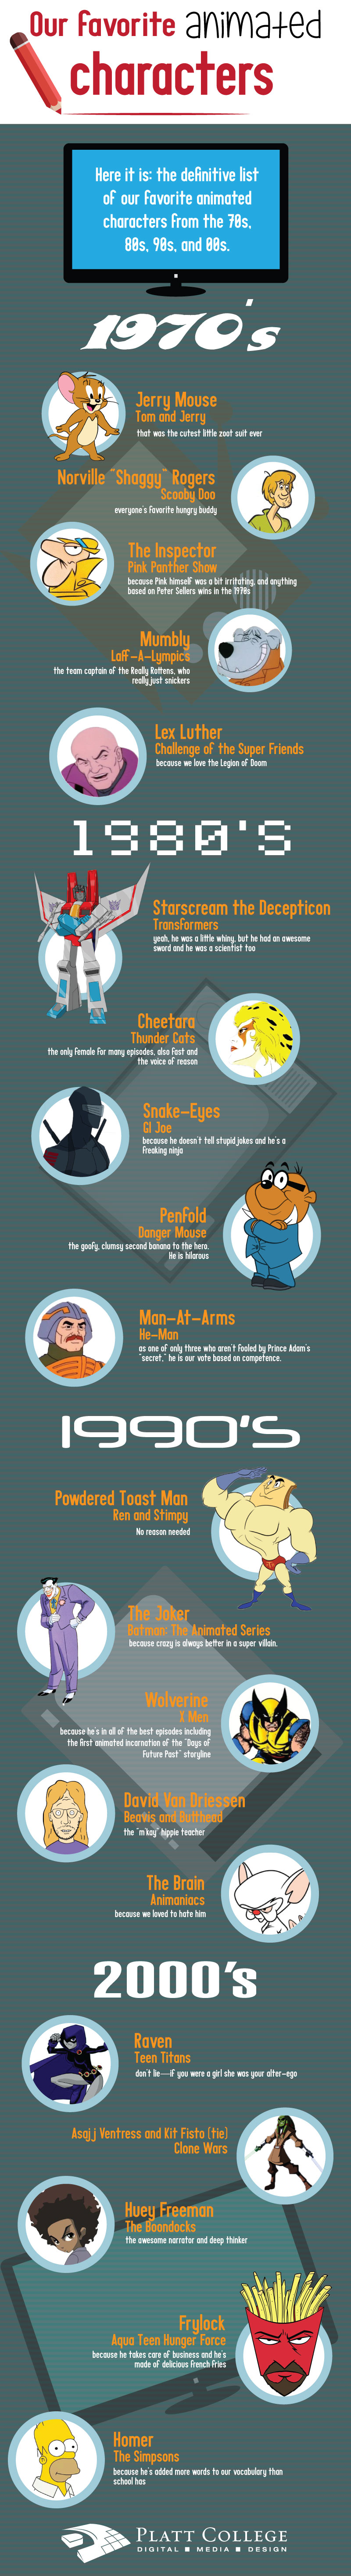 Favorite Animated Characters - Infographic